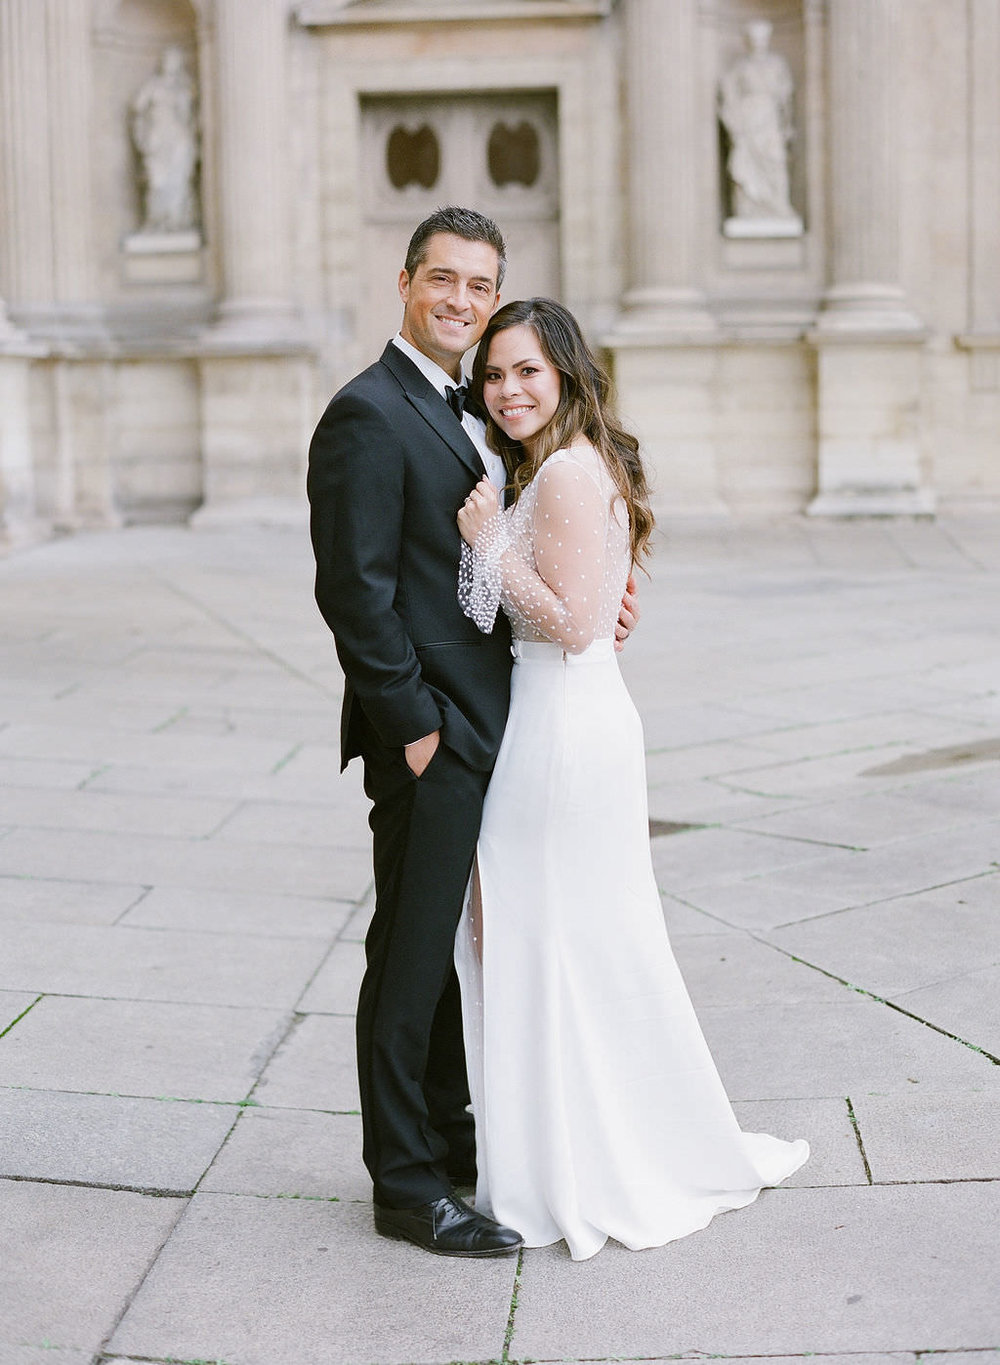 A classic Parisian backdrop for their intimate couple's photo session   Greg Finck Photography